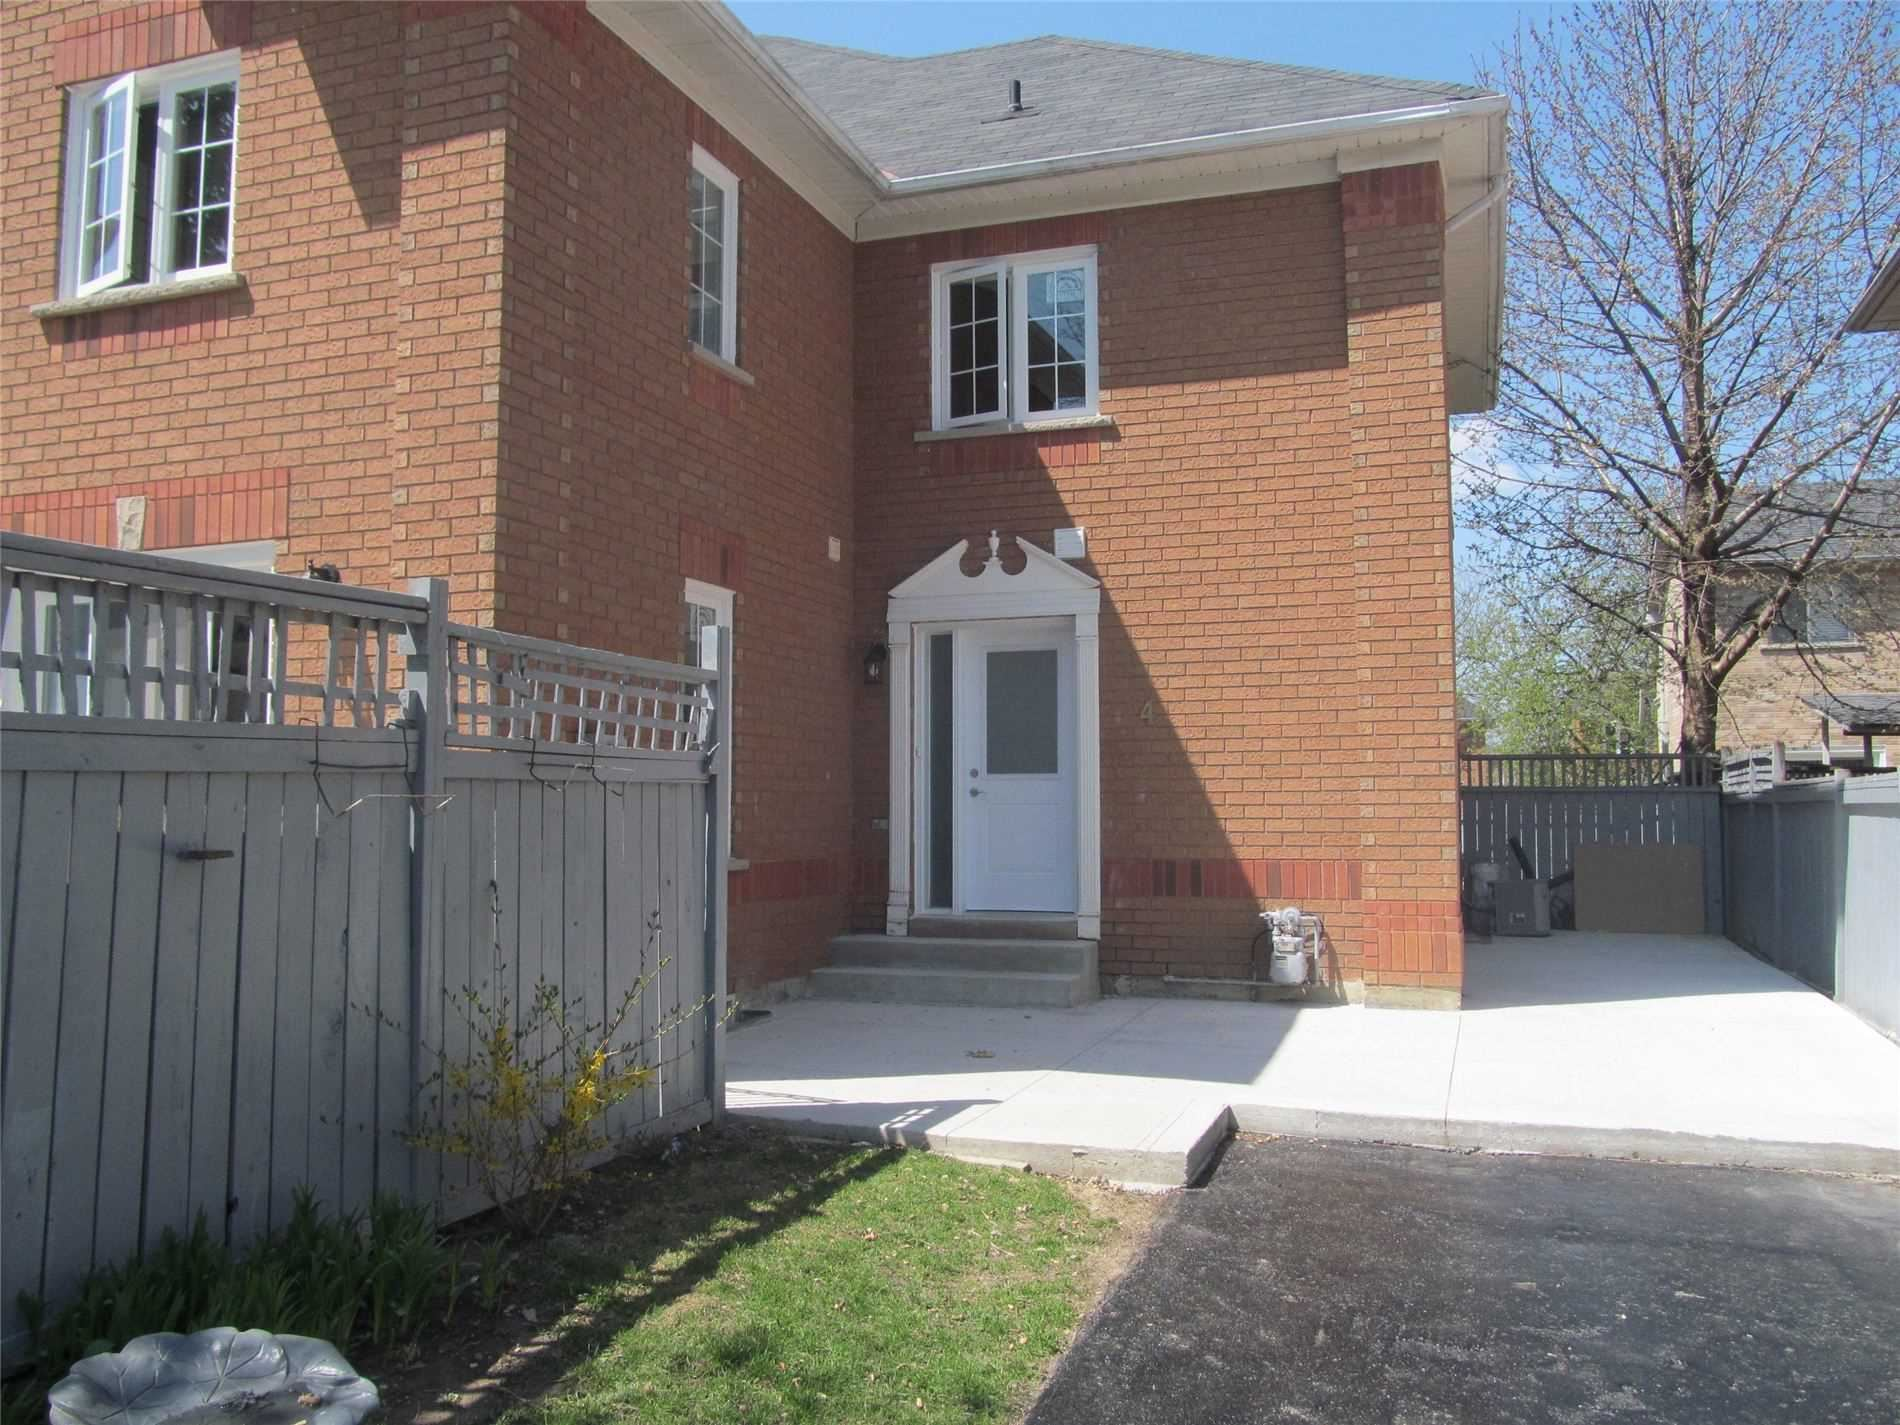 4 Rain Lily Lane, Brampton, ON L6R1S2 - MLS#: W5209184